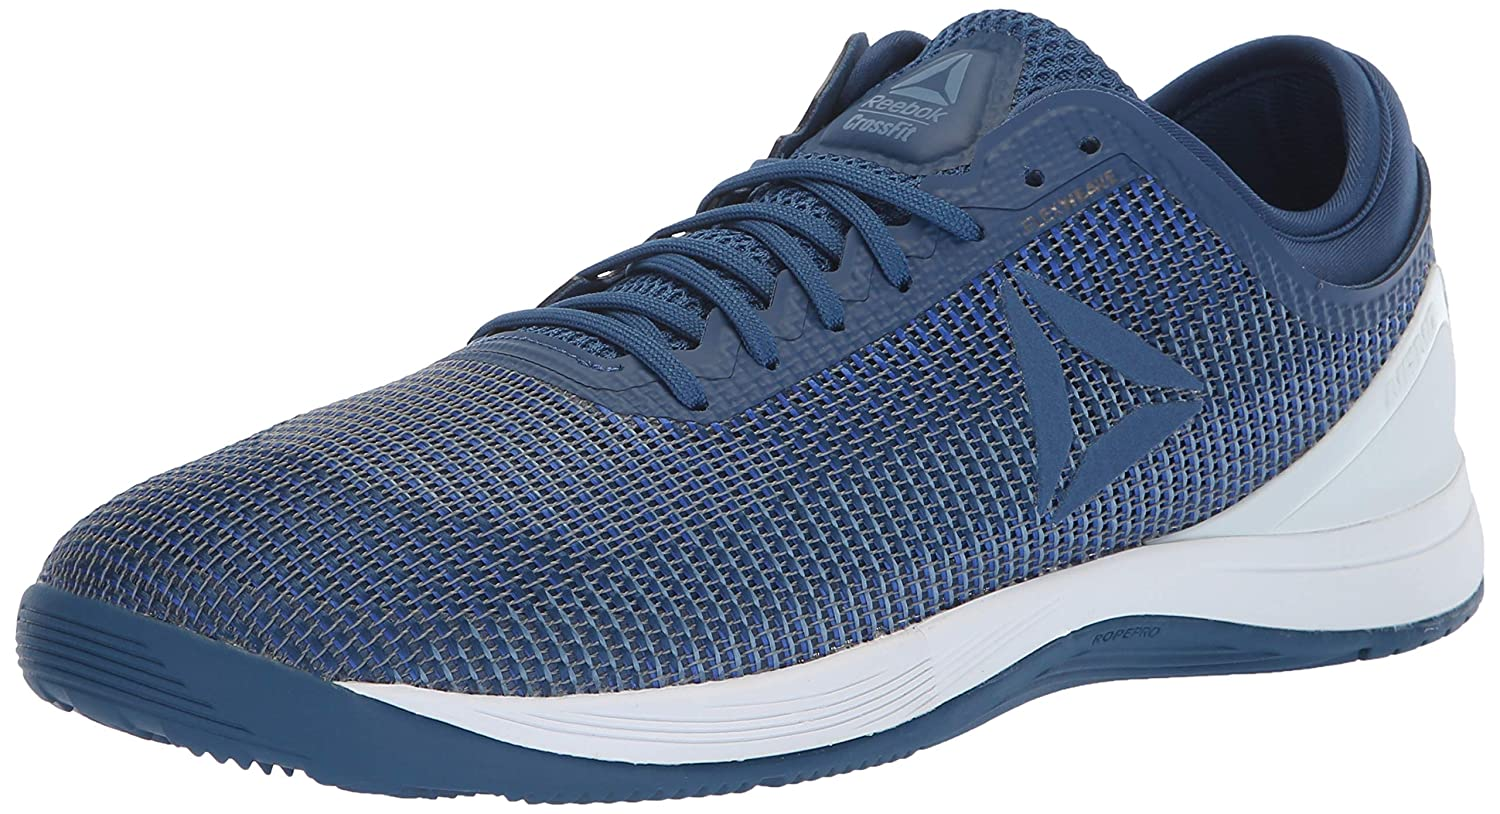 Reebok Men's Crossfit Nano 8.0 Training Shoes CN1038